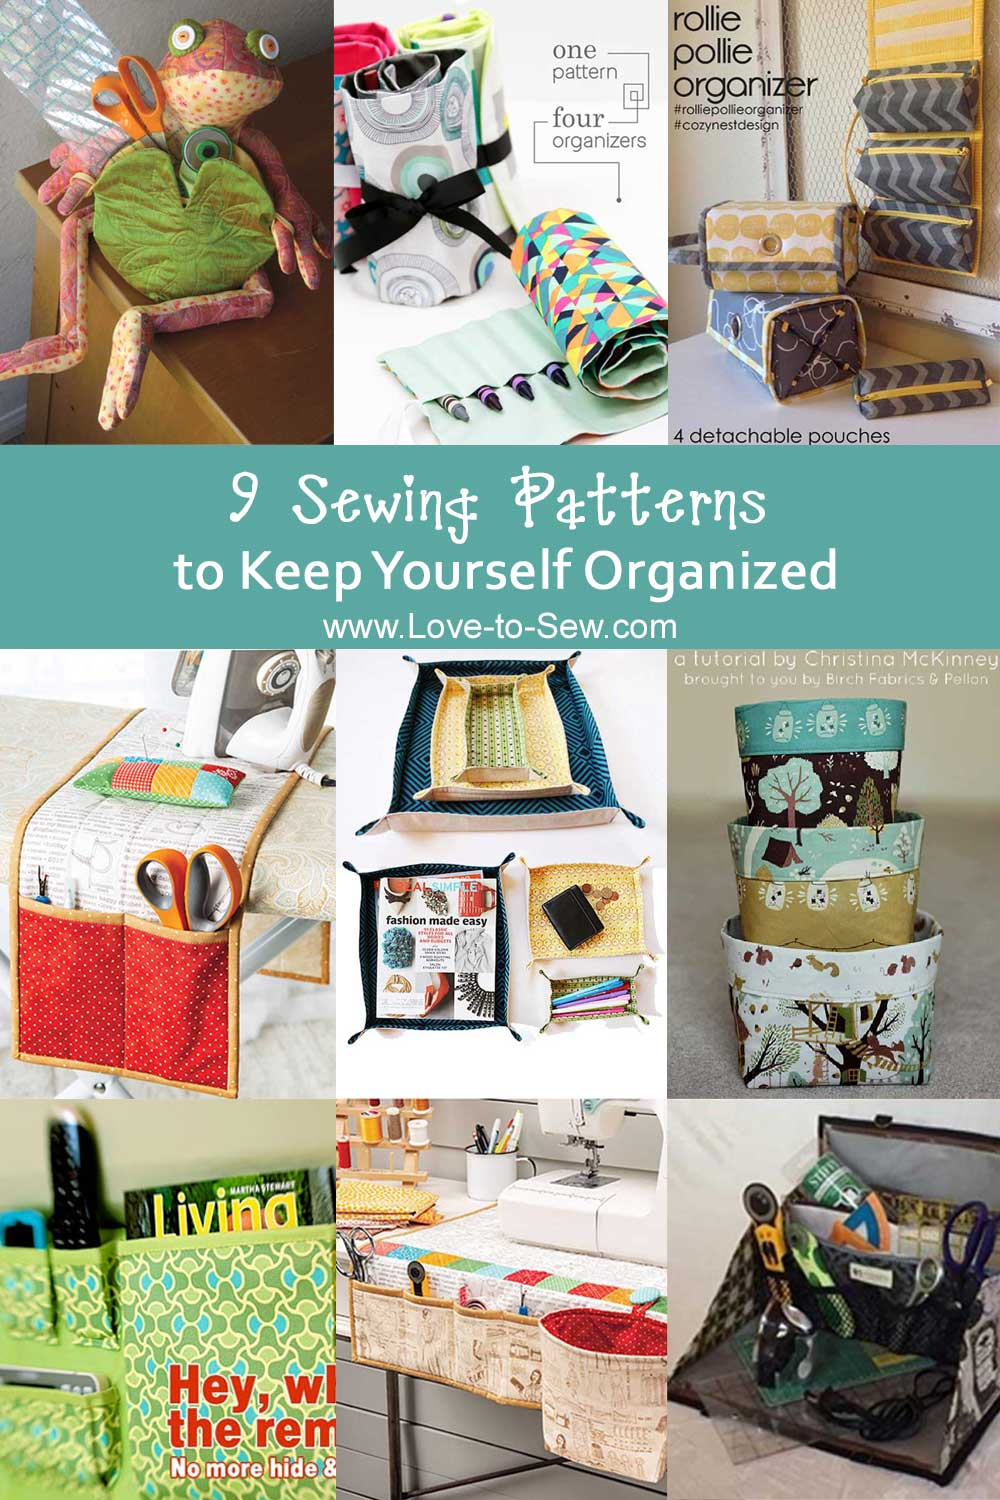 9 Sewing Patterns to Keep Your Stuff Organized